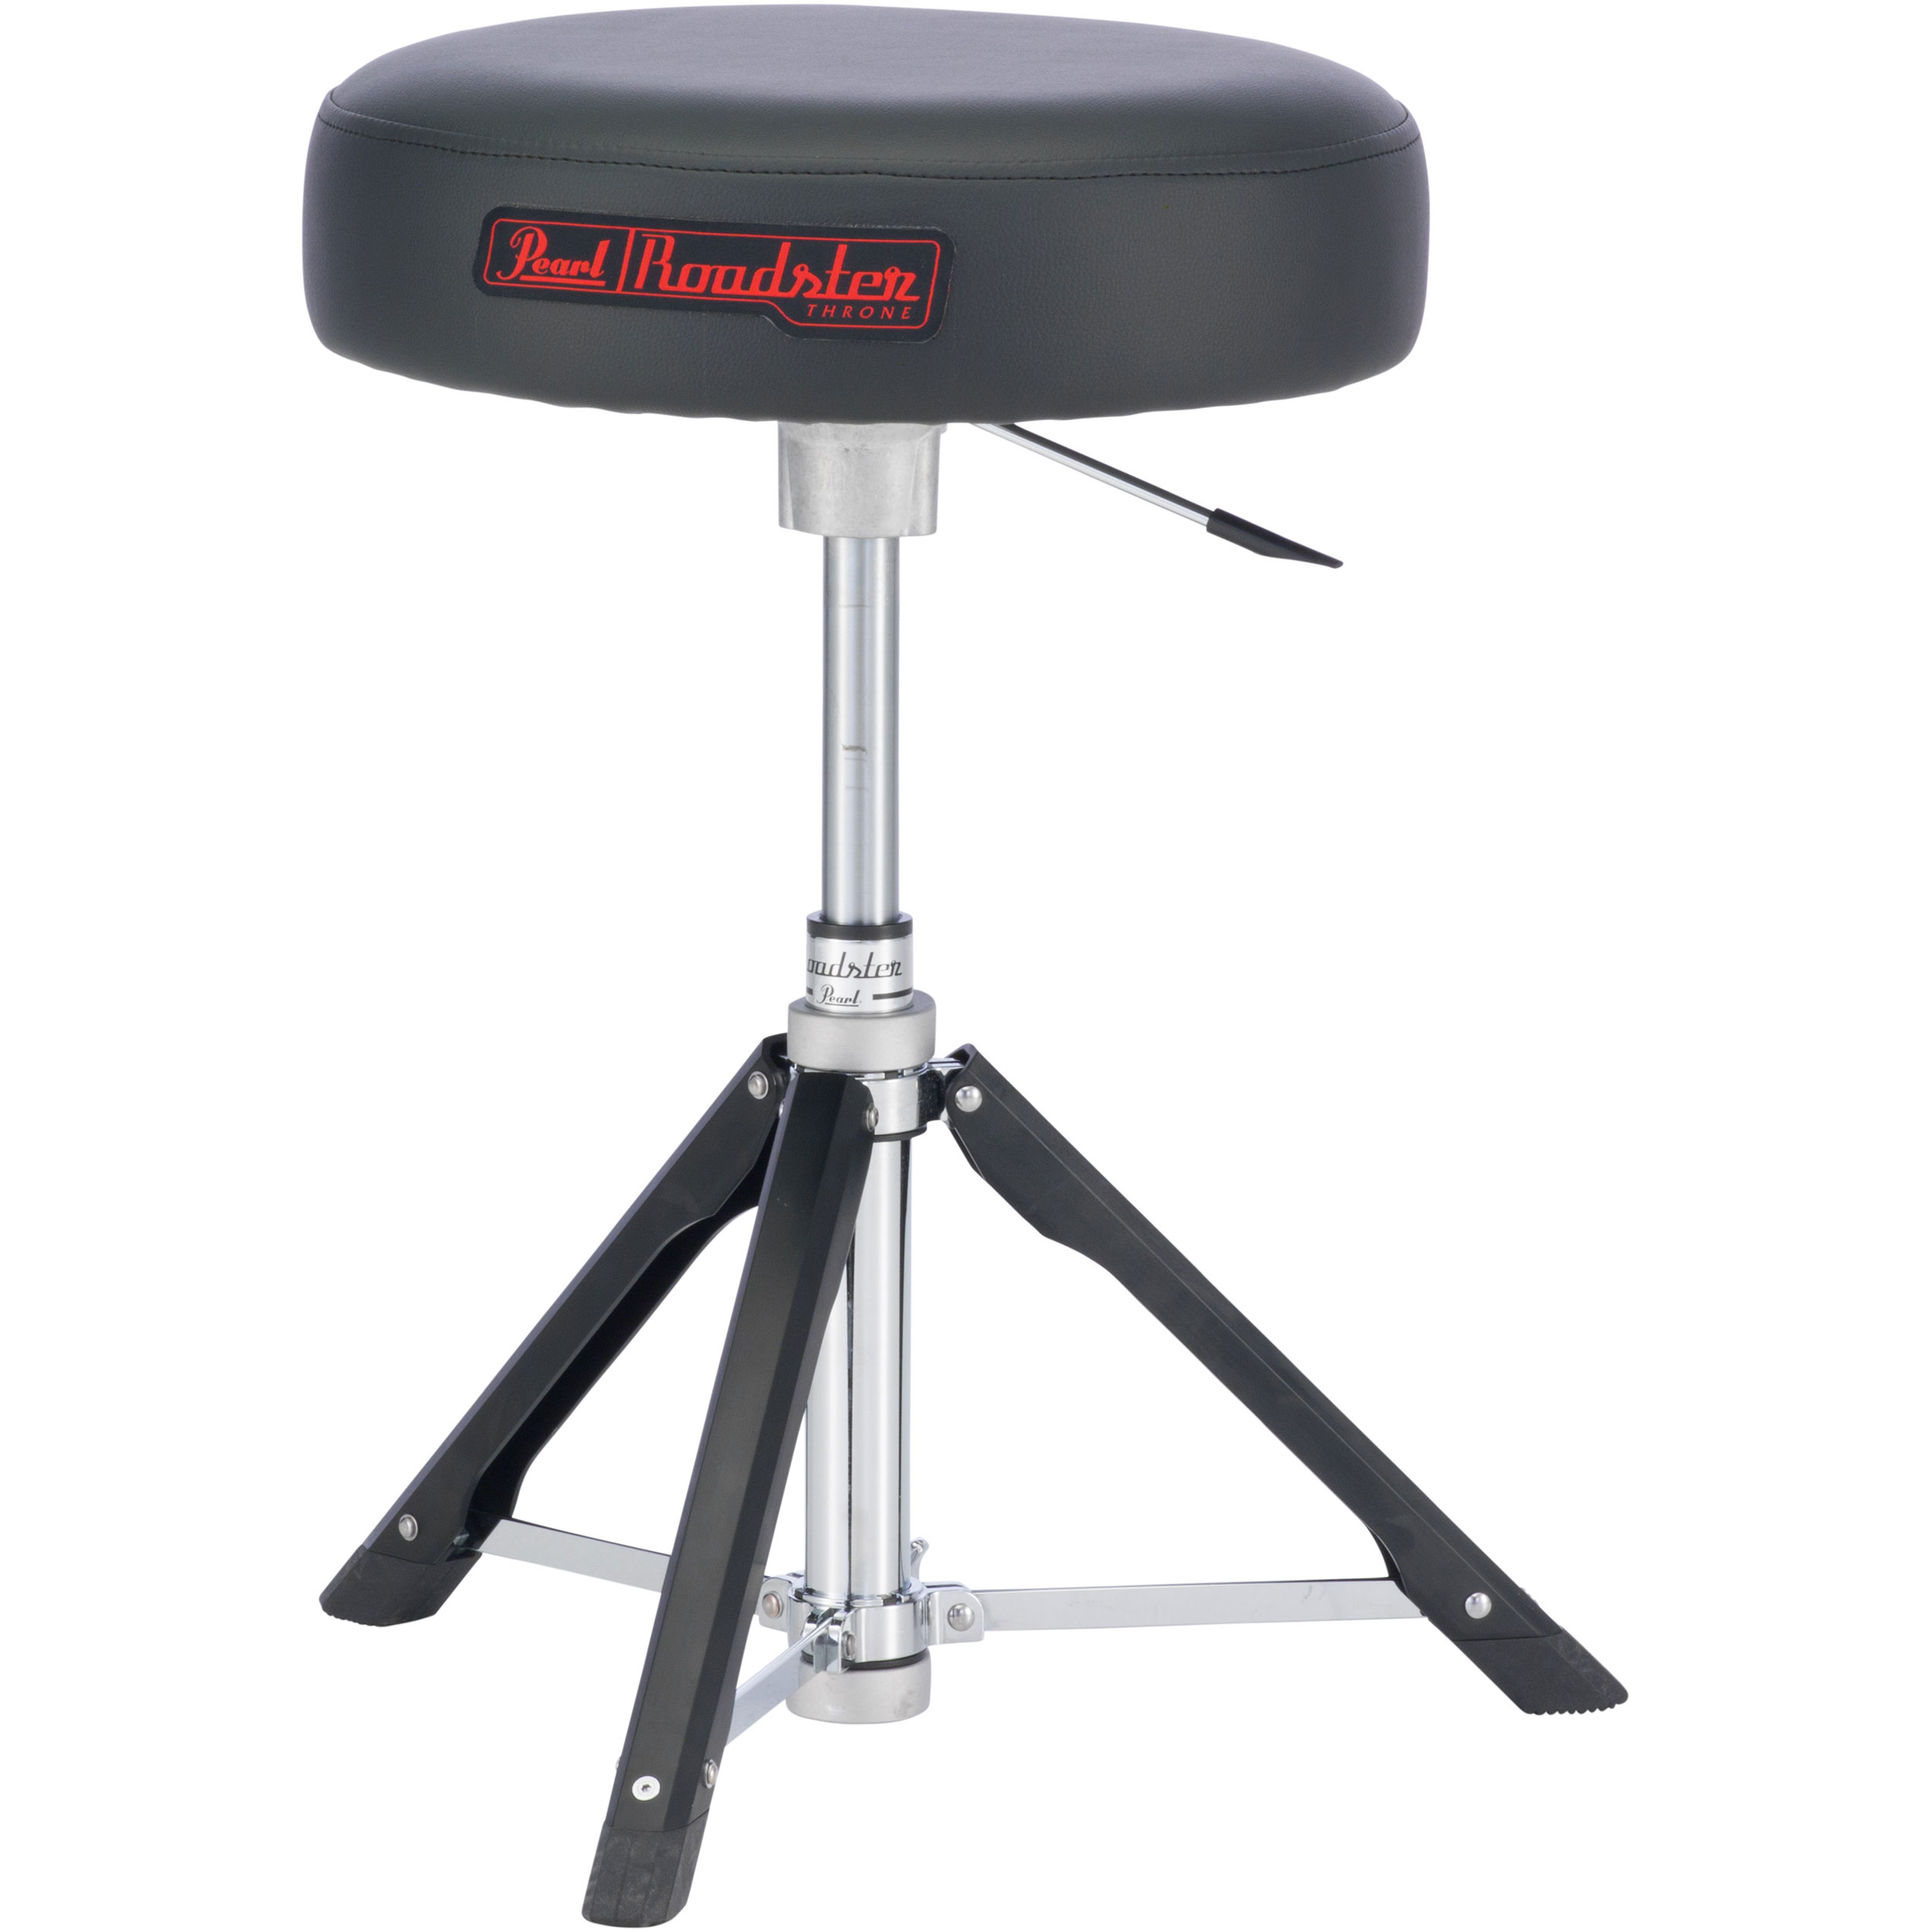 Pearl Roadster Round Multi-Core Gas Lift Throne with Lightweight Aluminum Struts